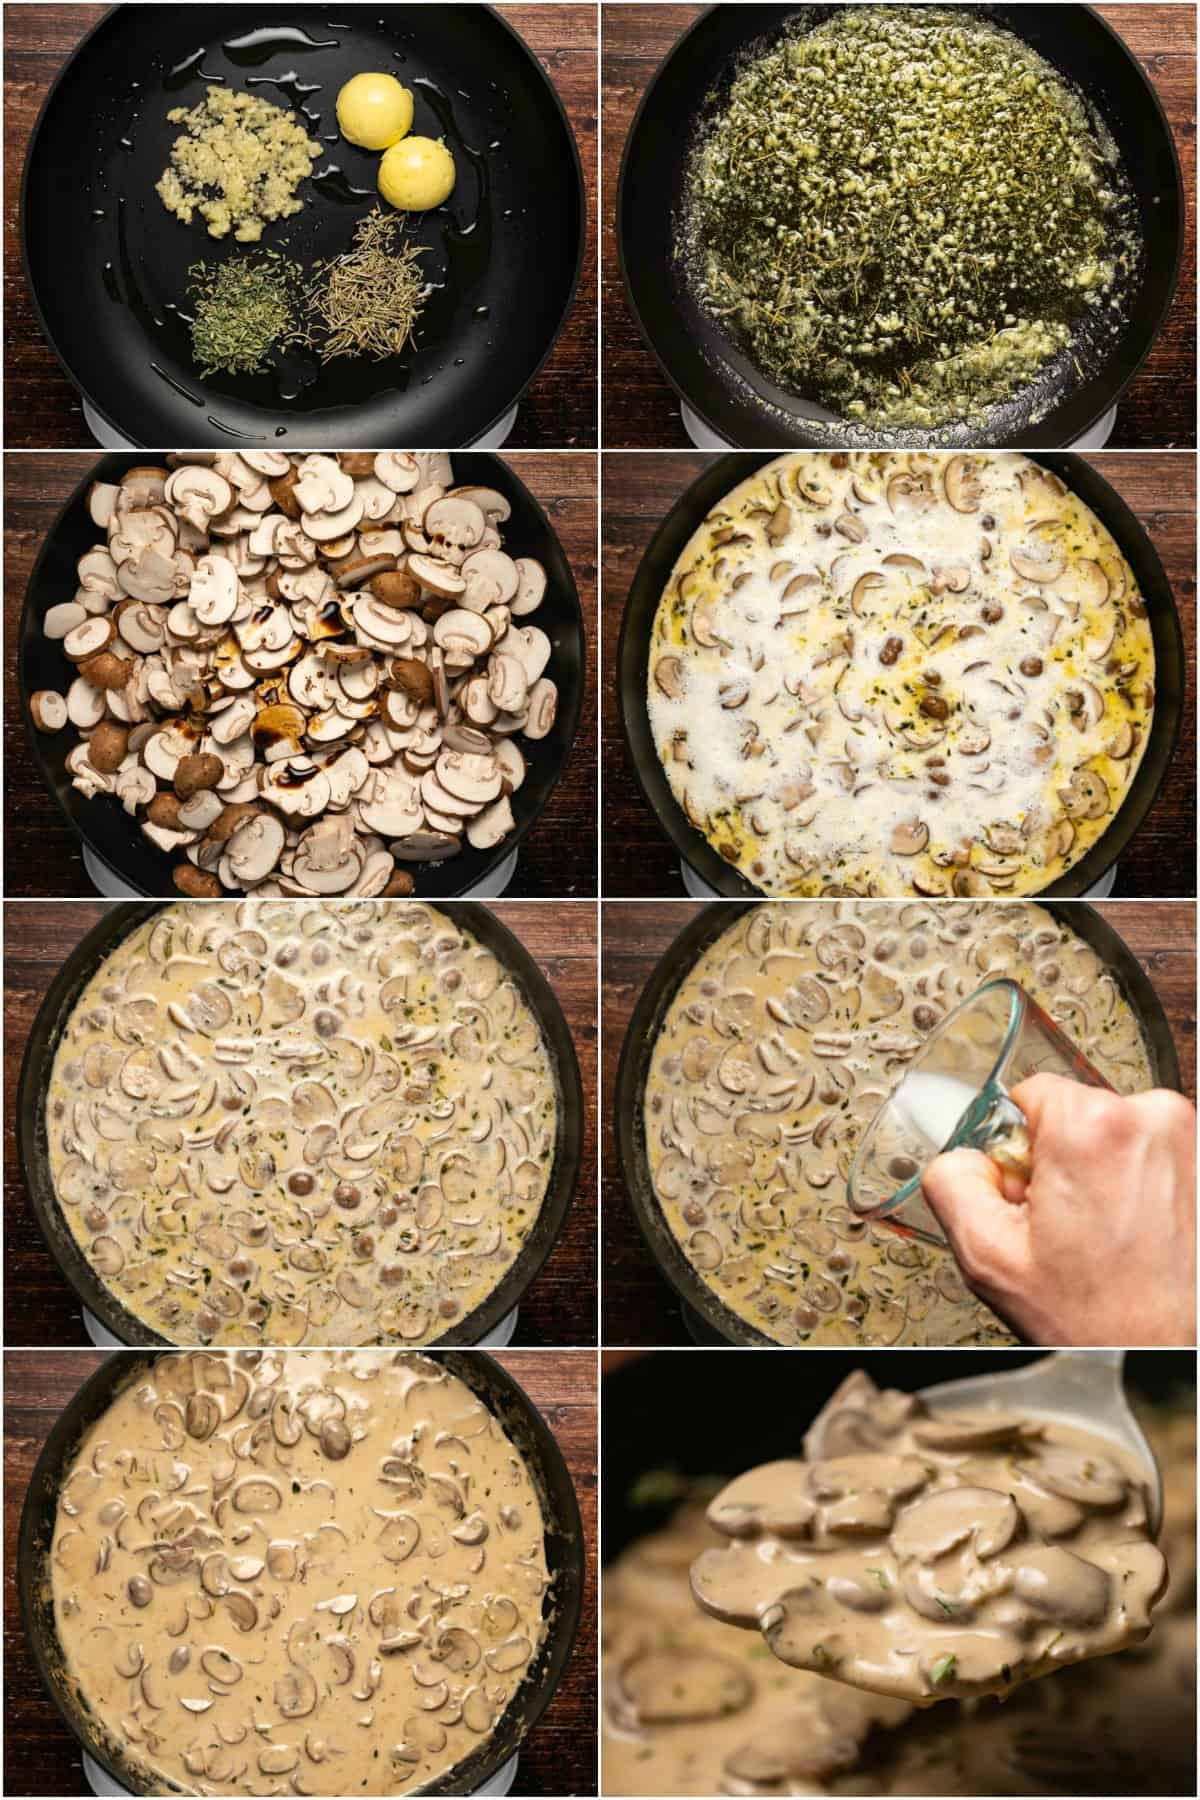 Step by step process photo collage of making mushroom sauce.